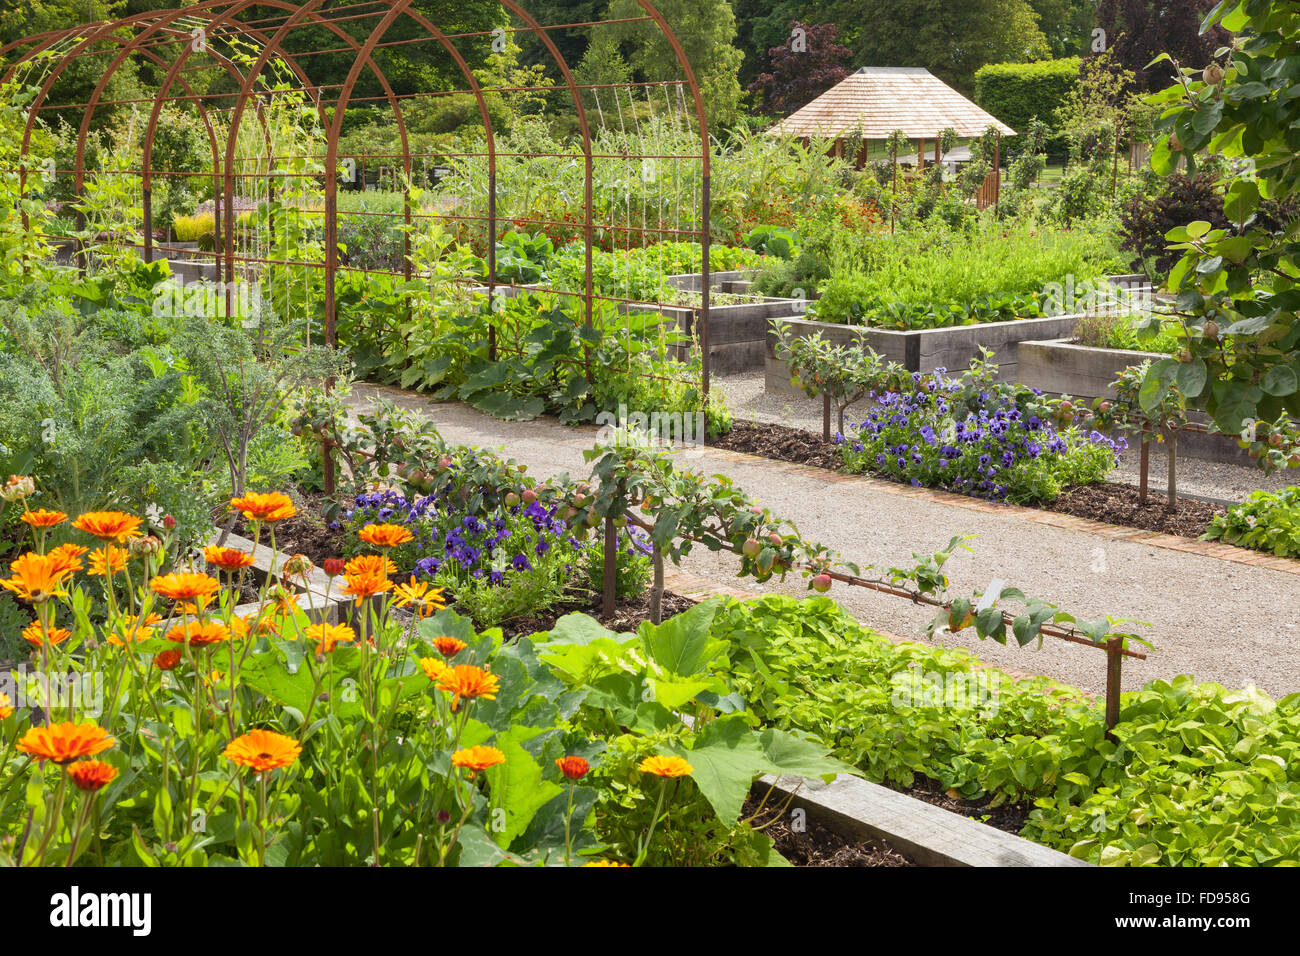 Metal archway climbing frame among raised beds. The